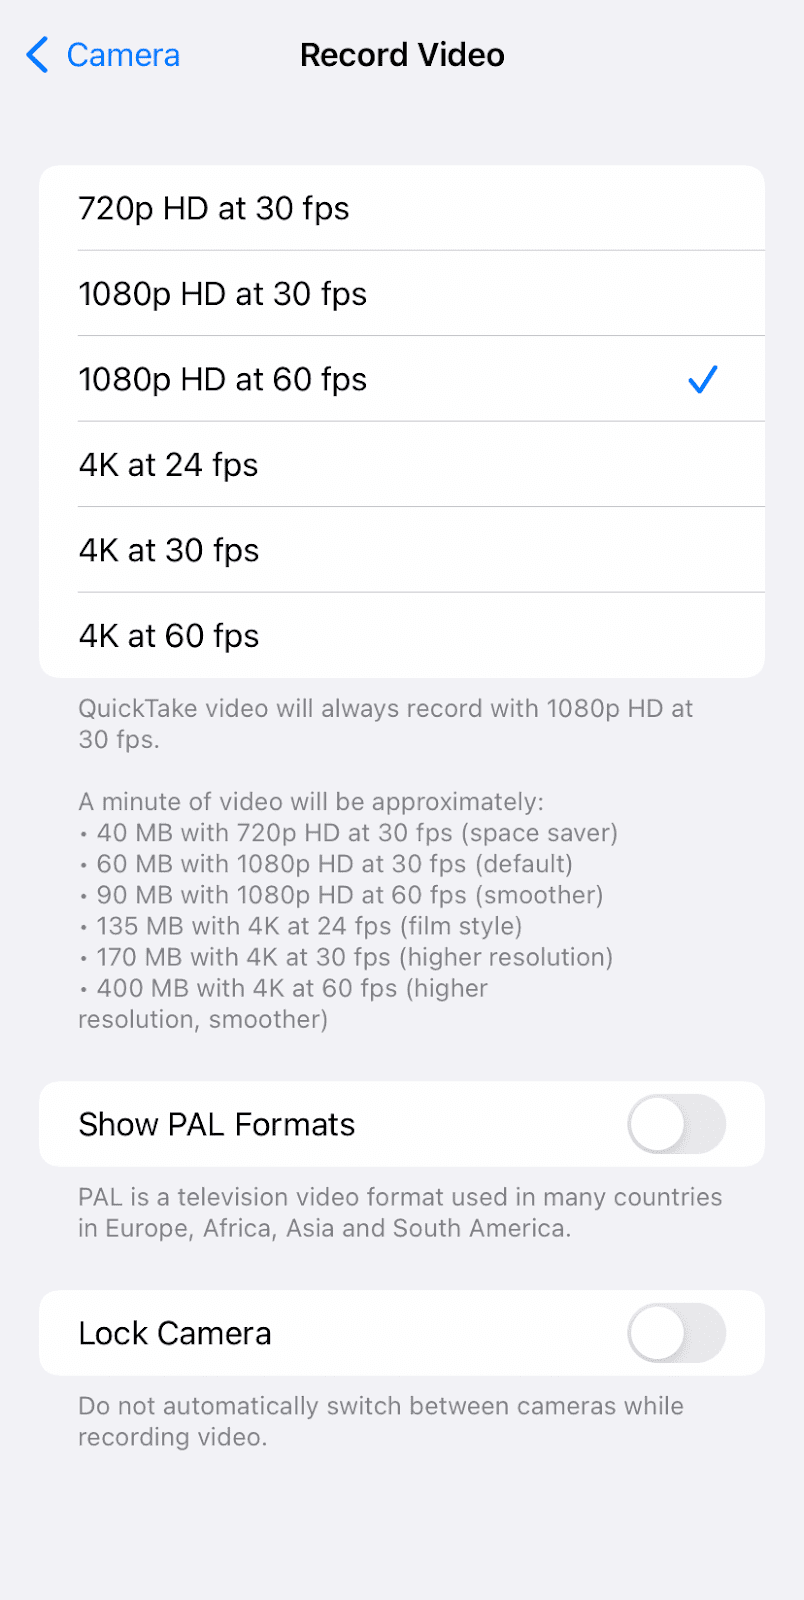 Record videos with lower resolution